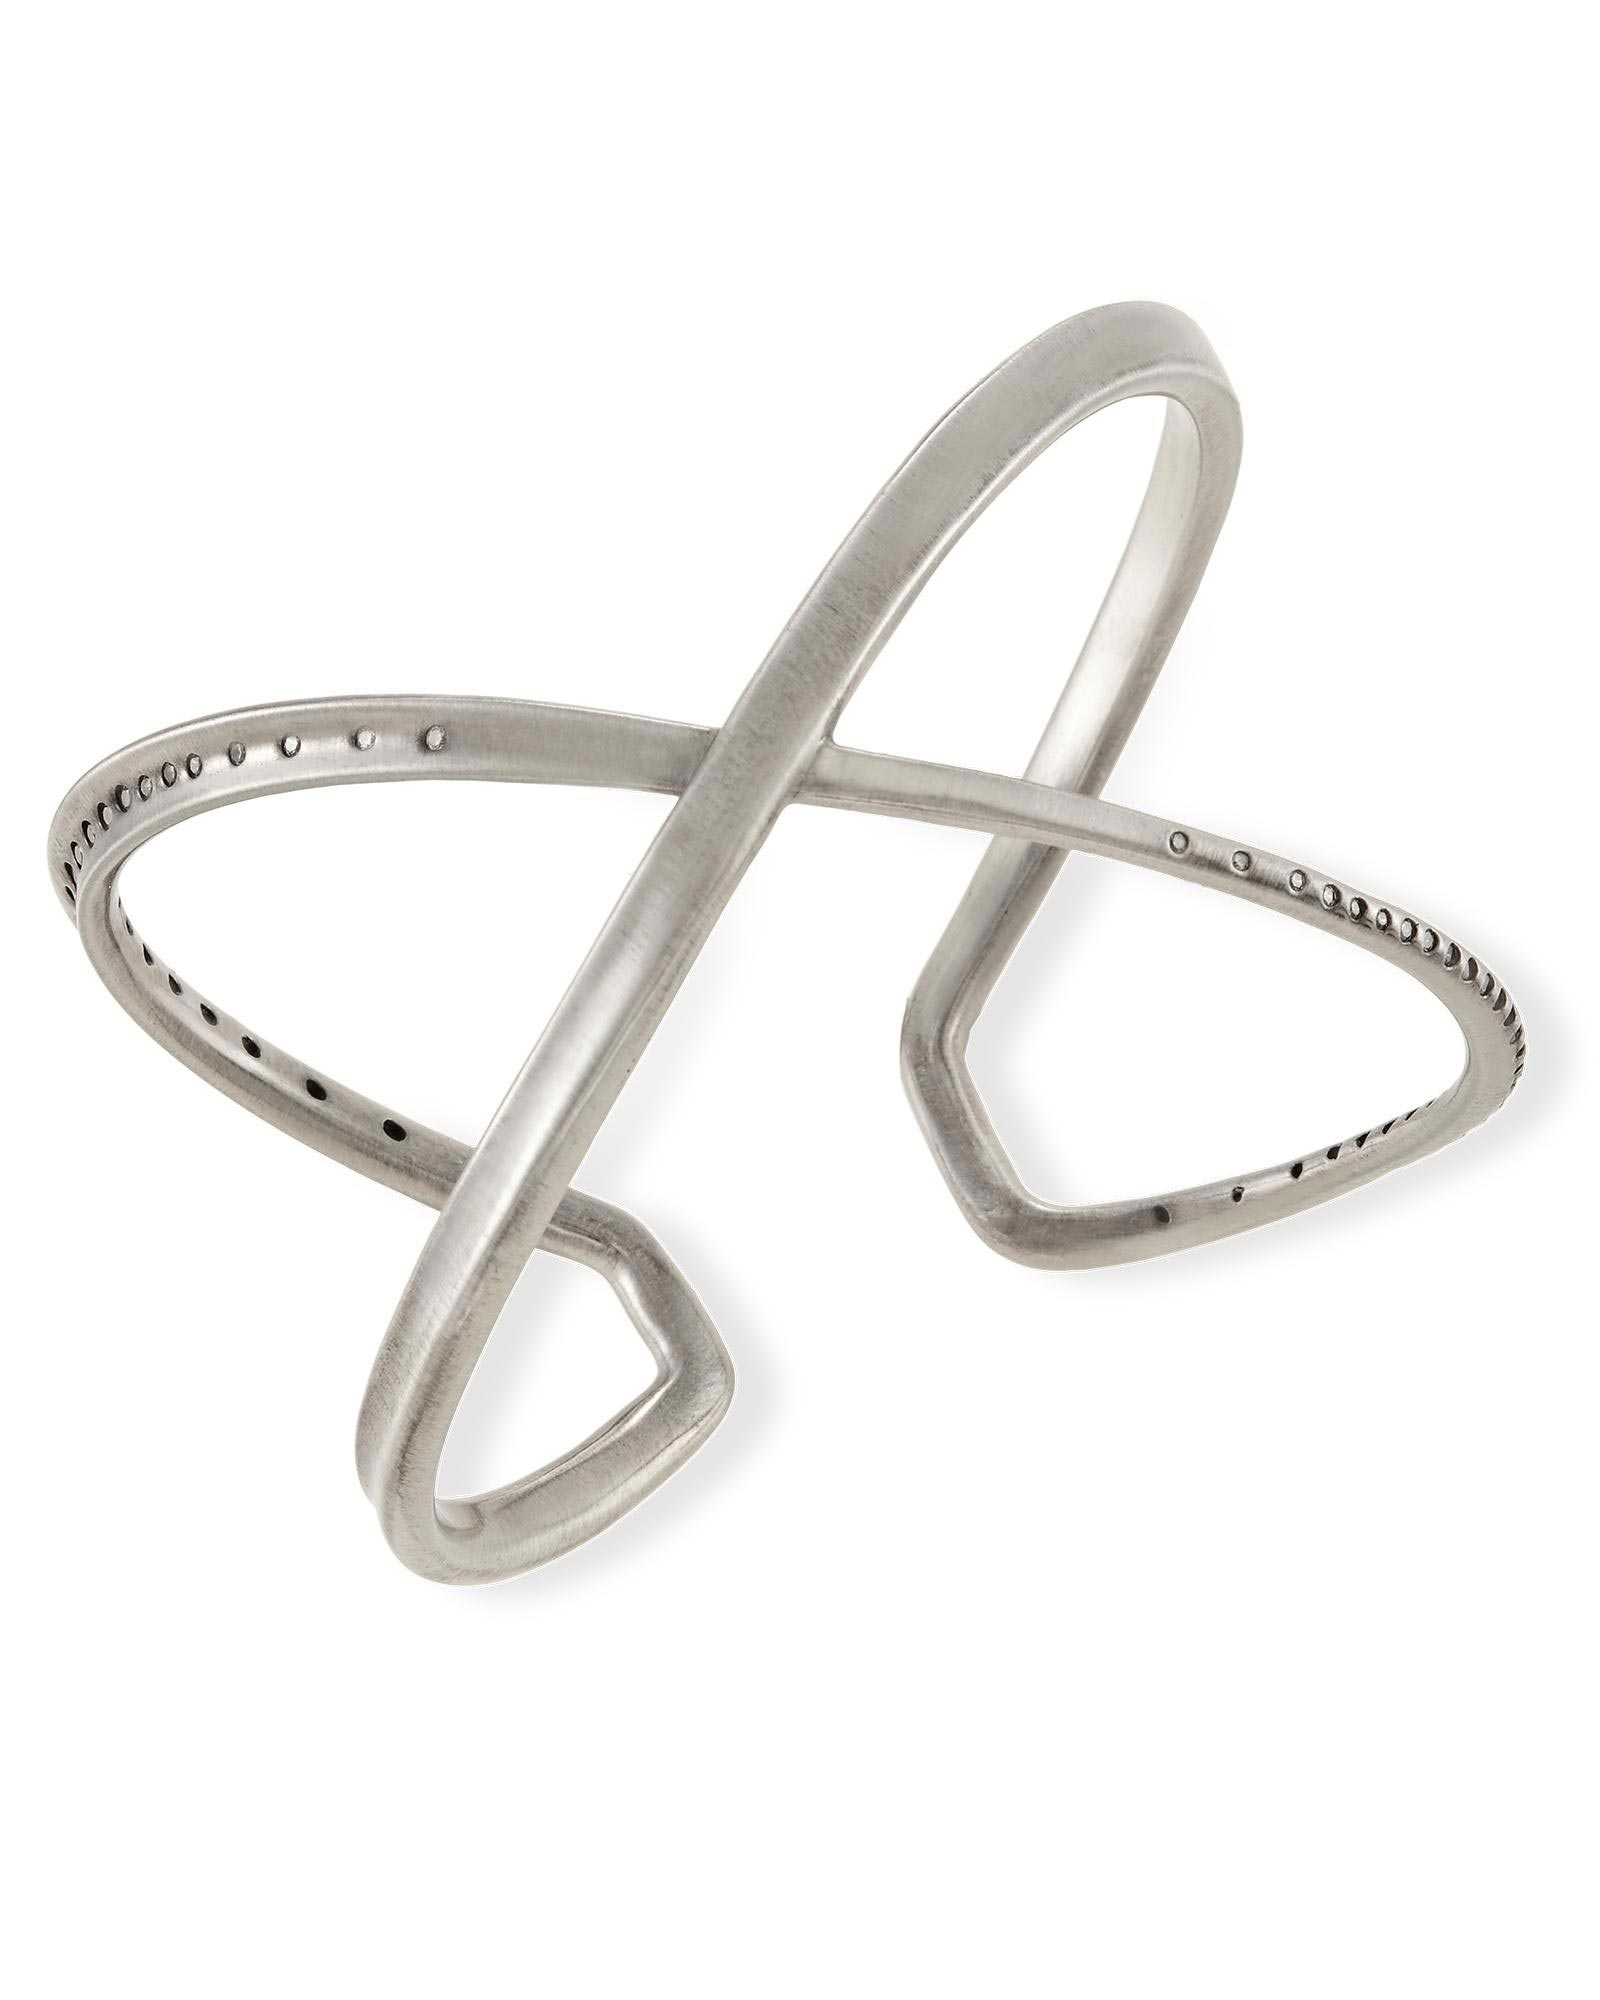 Stella Cuff Bracelet in Antique Silver